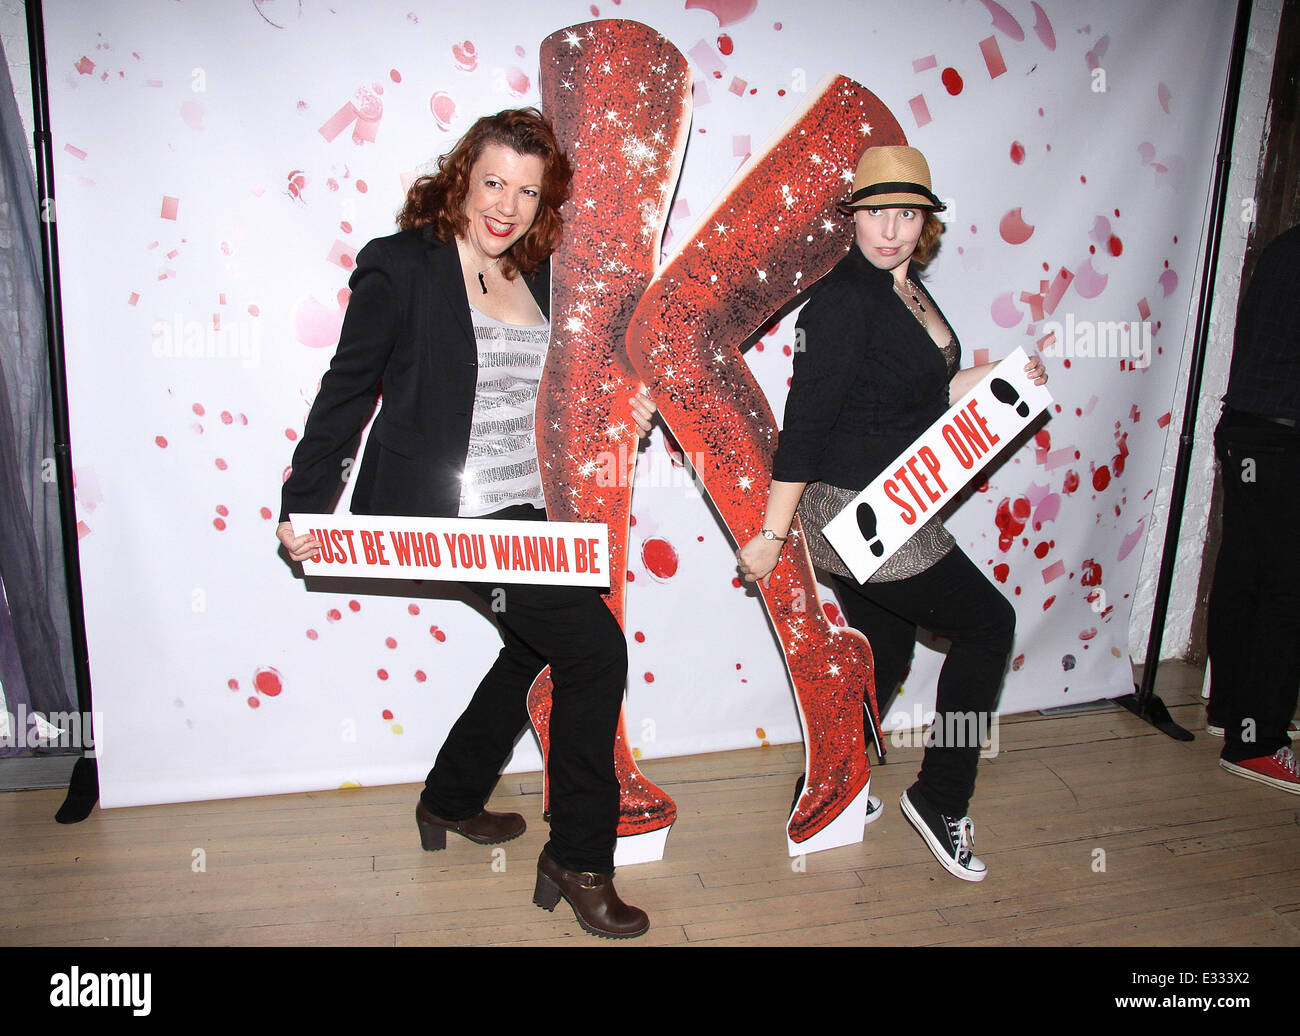 The Kitchen Cast kinky boots' original cast recording cd launch party held at abc